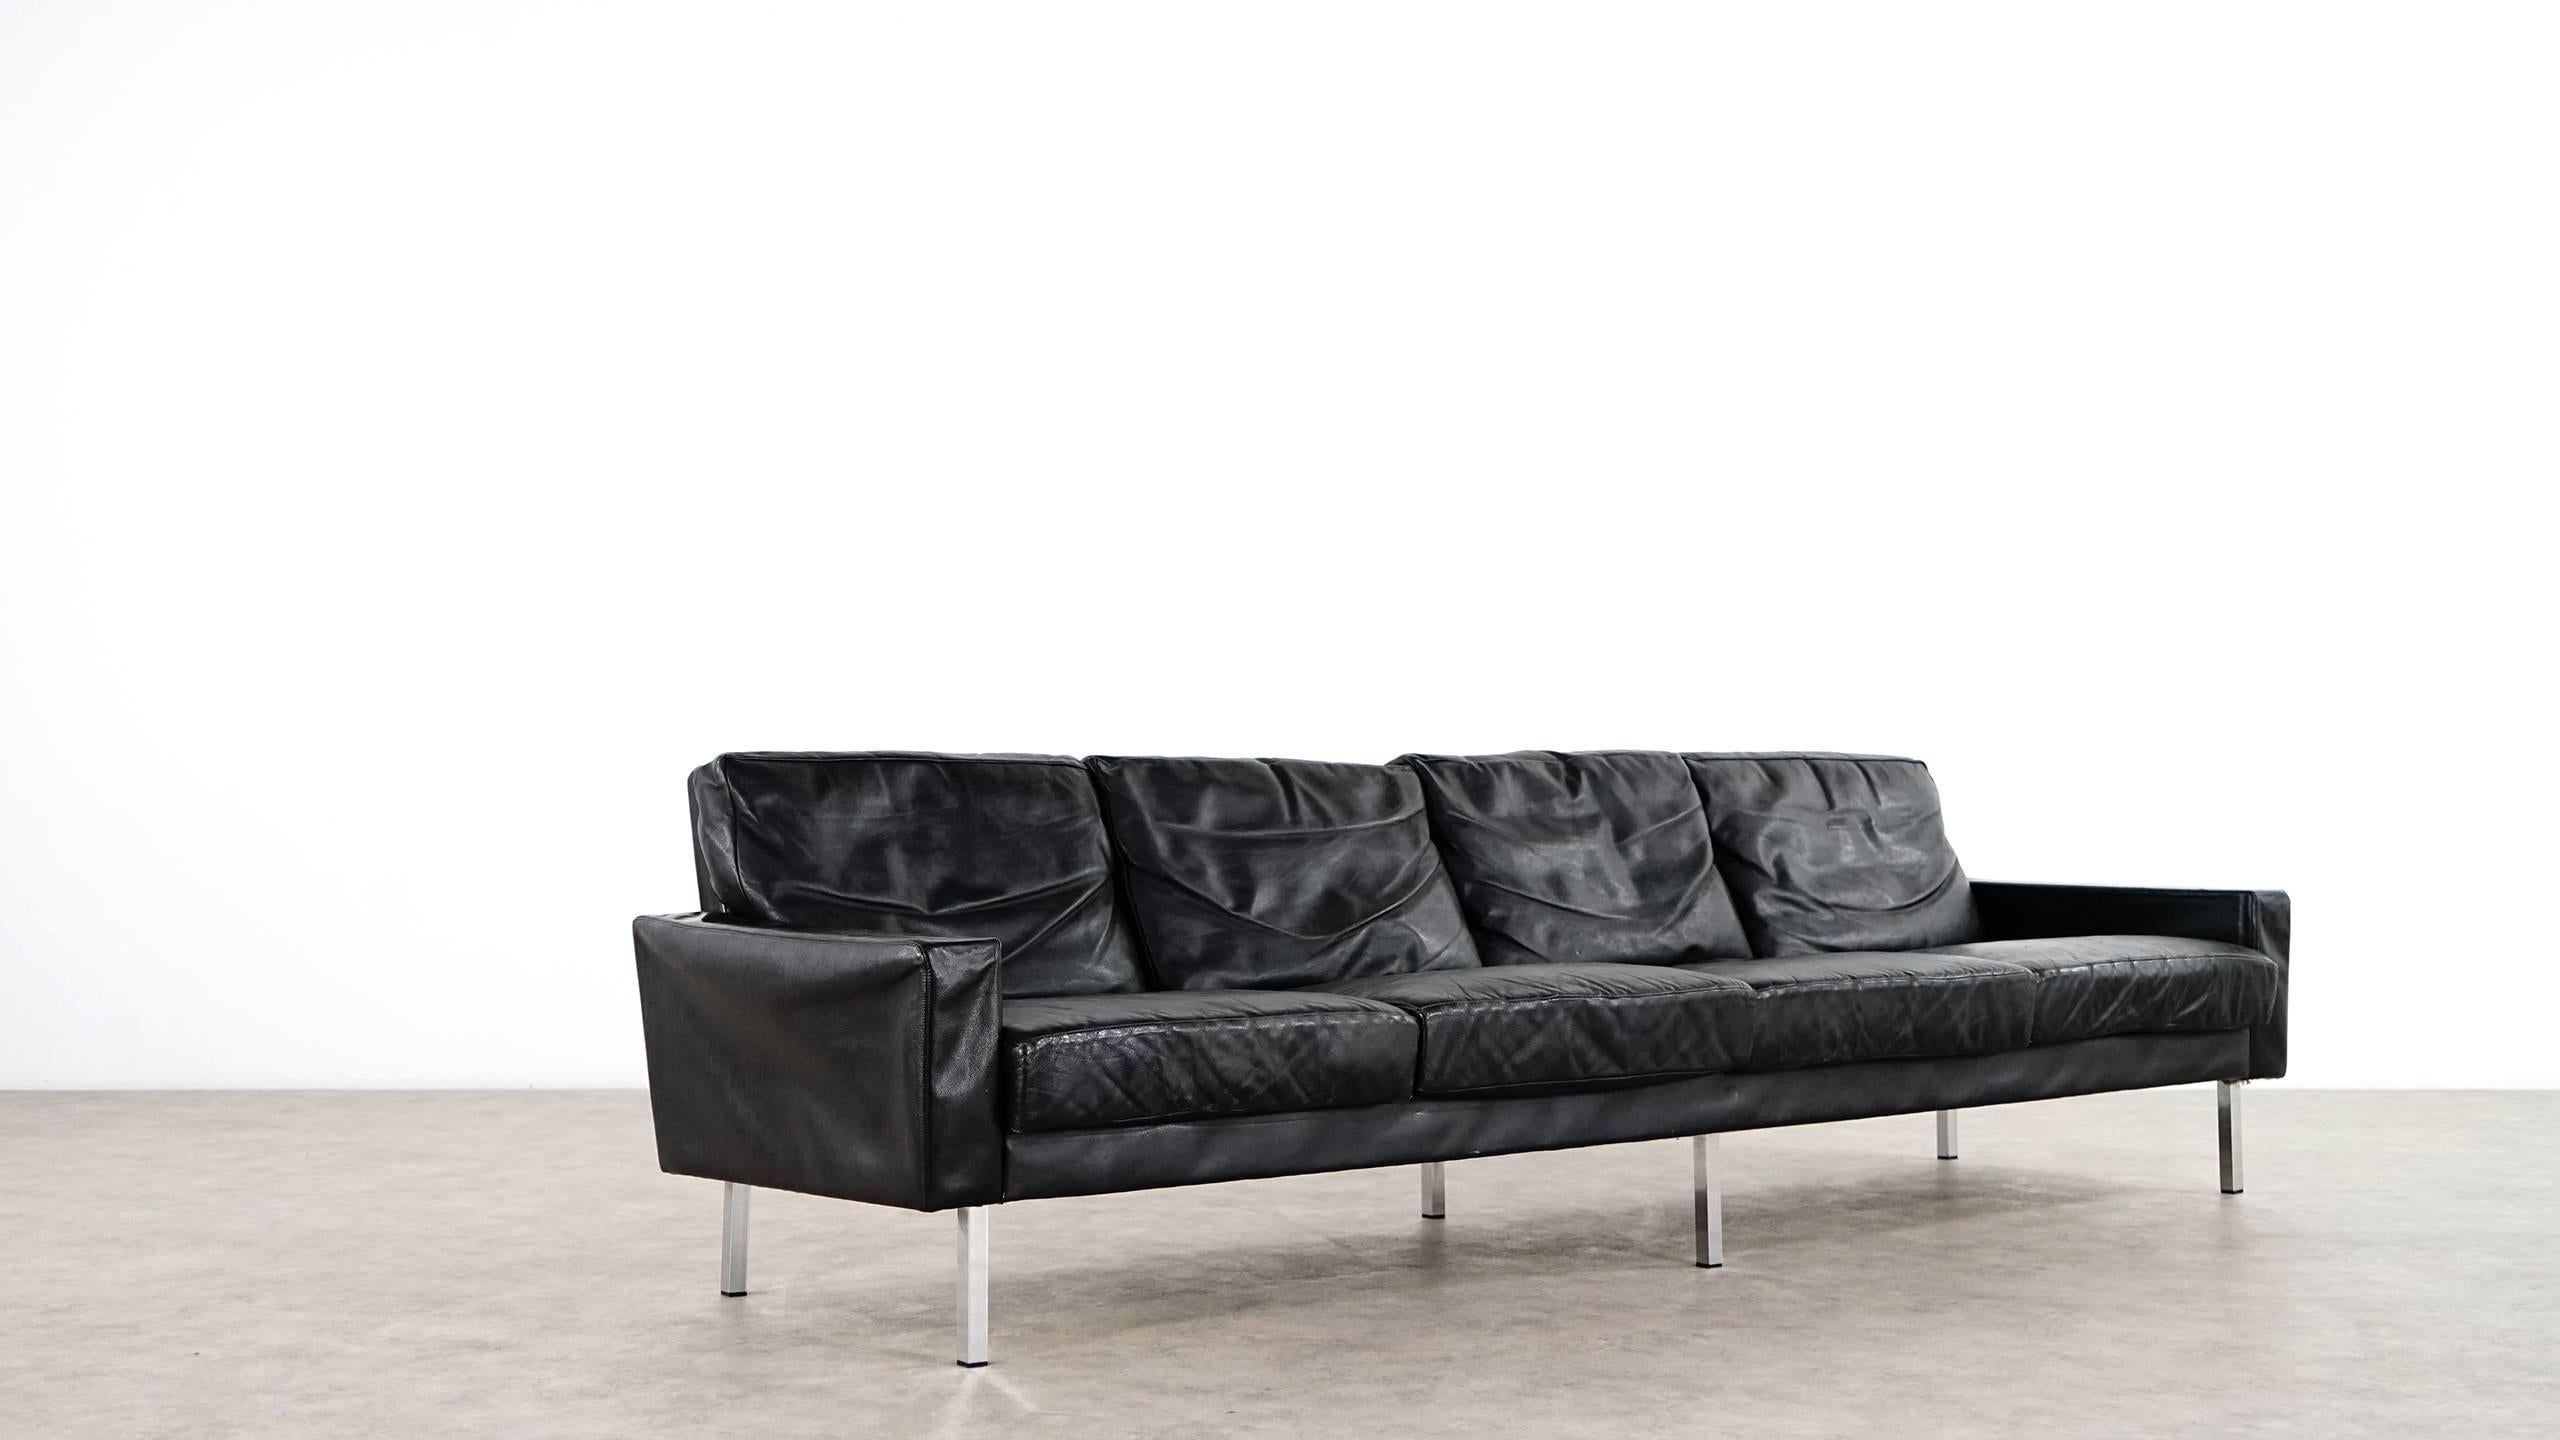 Genial Mid Century Modern George Nelson Loose Cushion Four Seat Leather Sofa, 1962  By